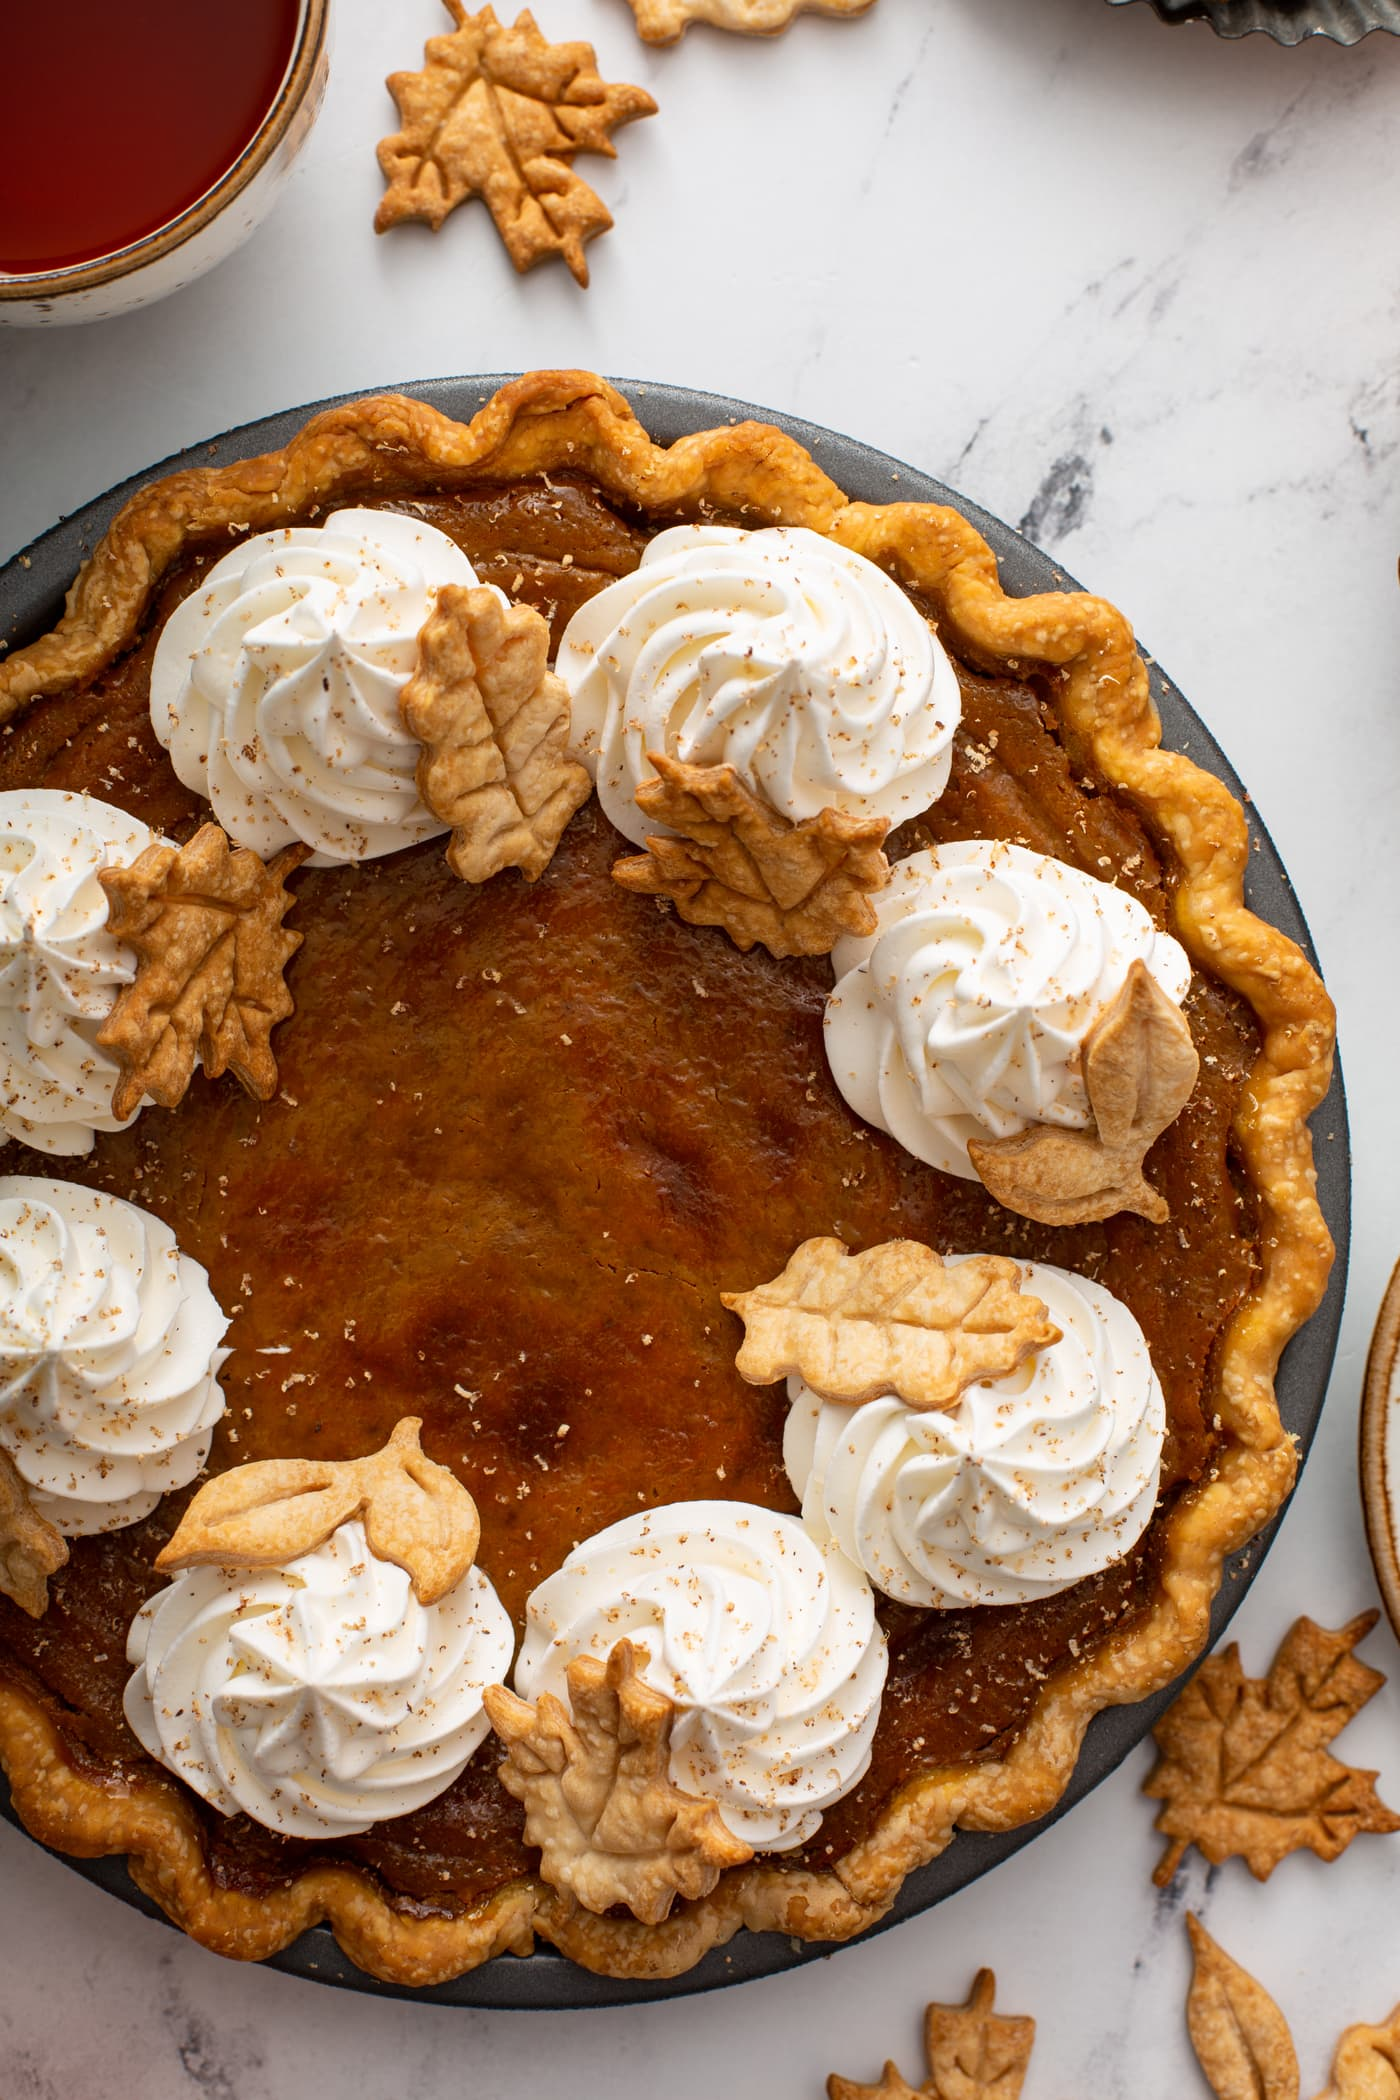 A photo of a pumpkin pie topped with piped whipped cream and stamped pie crust leaves taken from above.